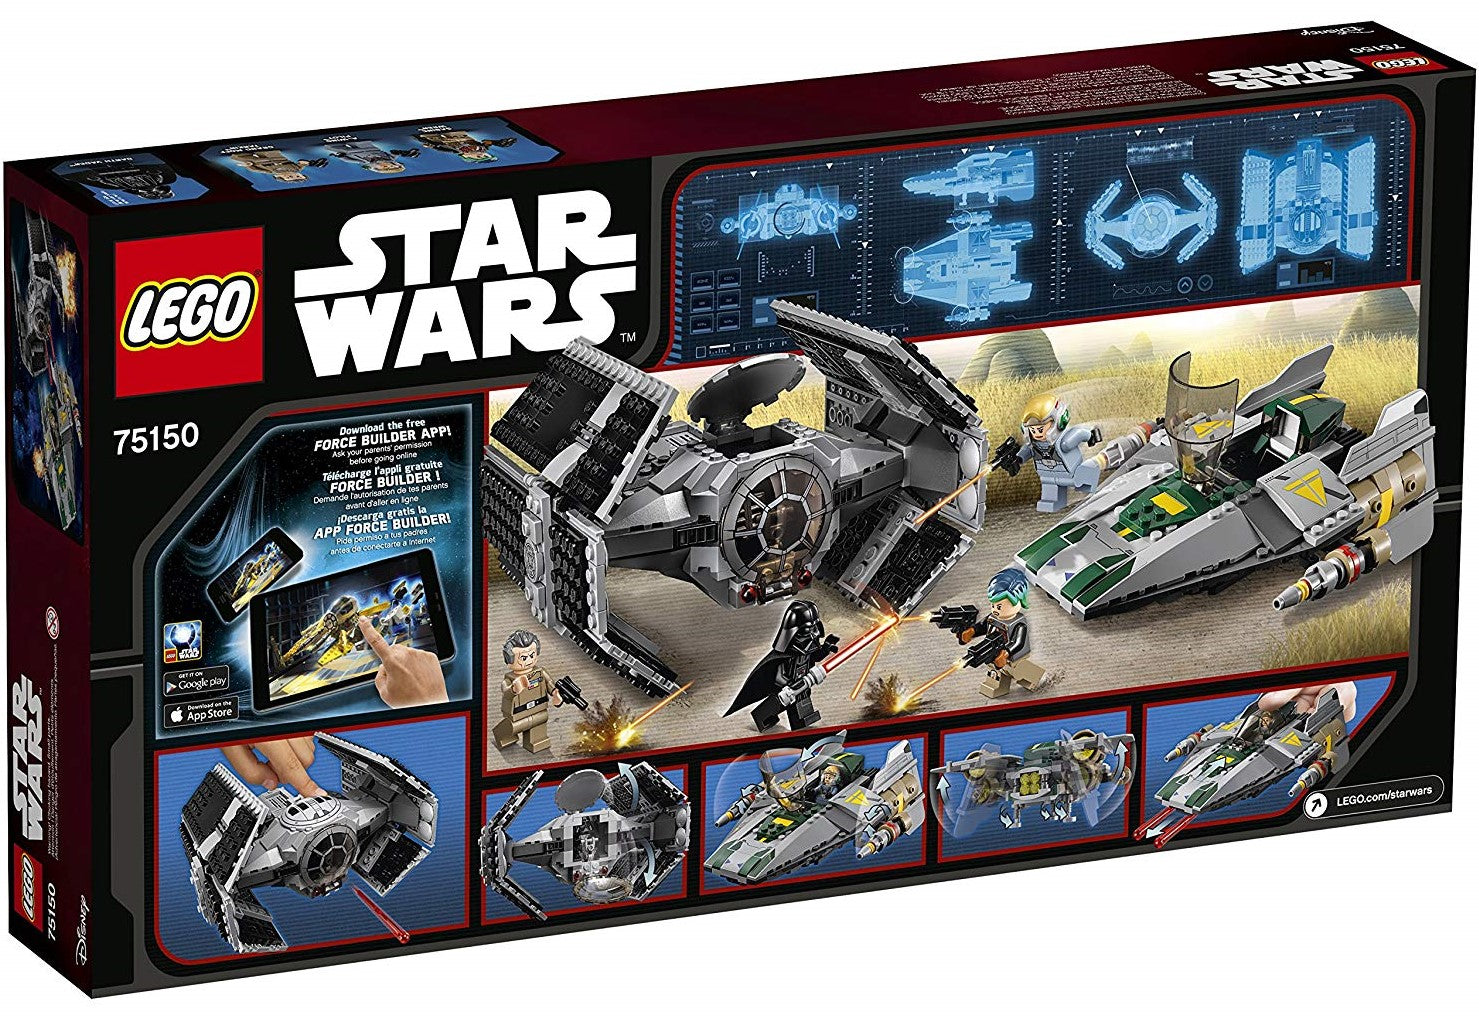 LEGO - Star Wars: Rebels - Vader's TIE Advanced vs. A-Wing Starfighter (75150)